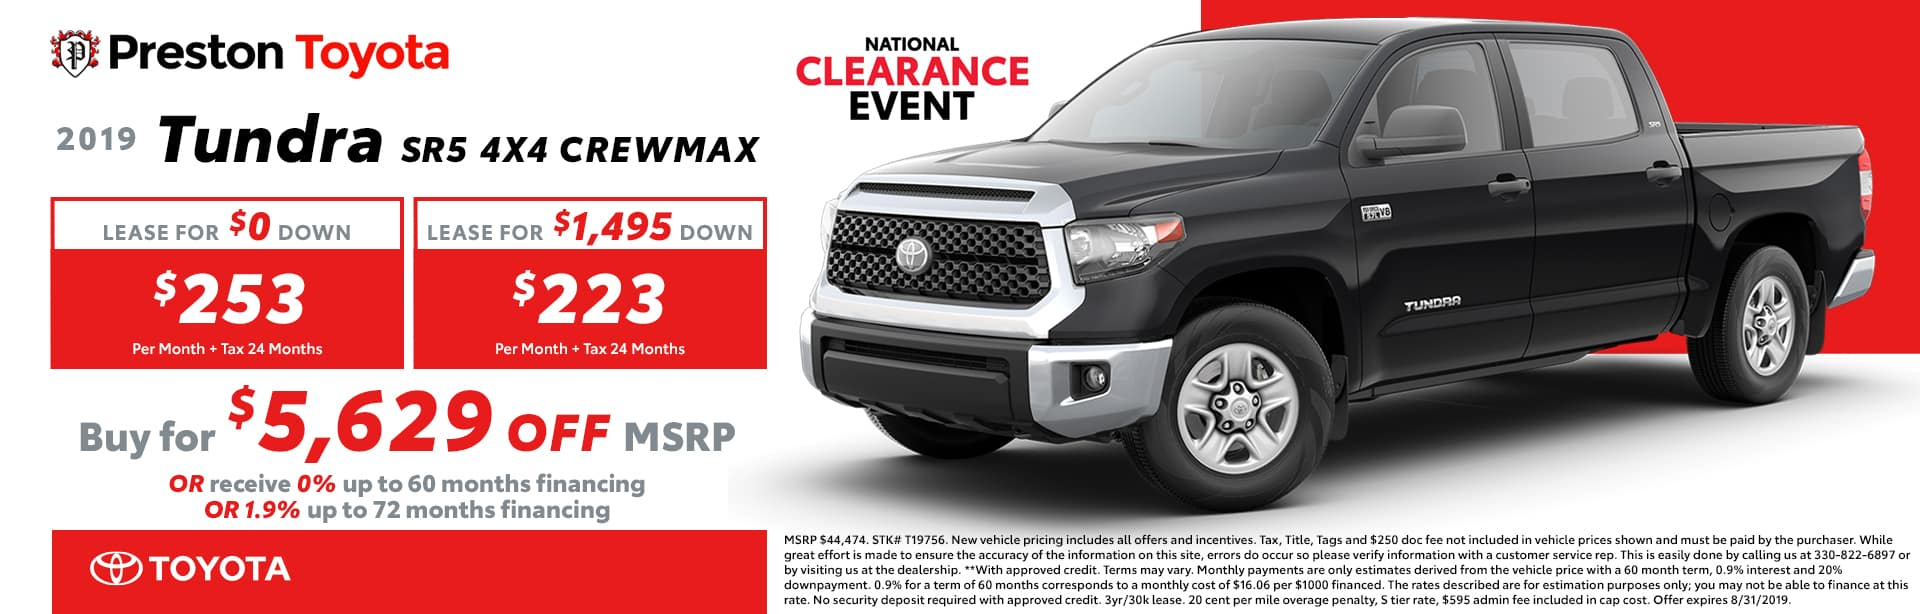 August special on the 2019 Toyota Tundra